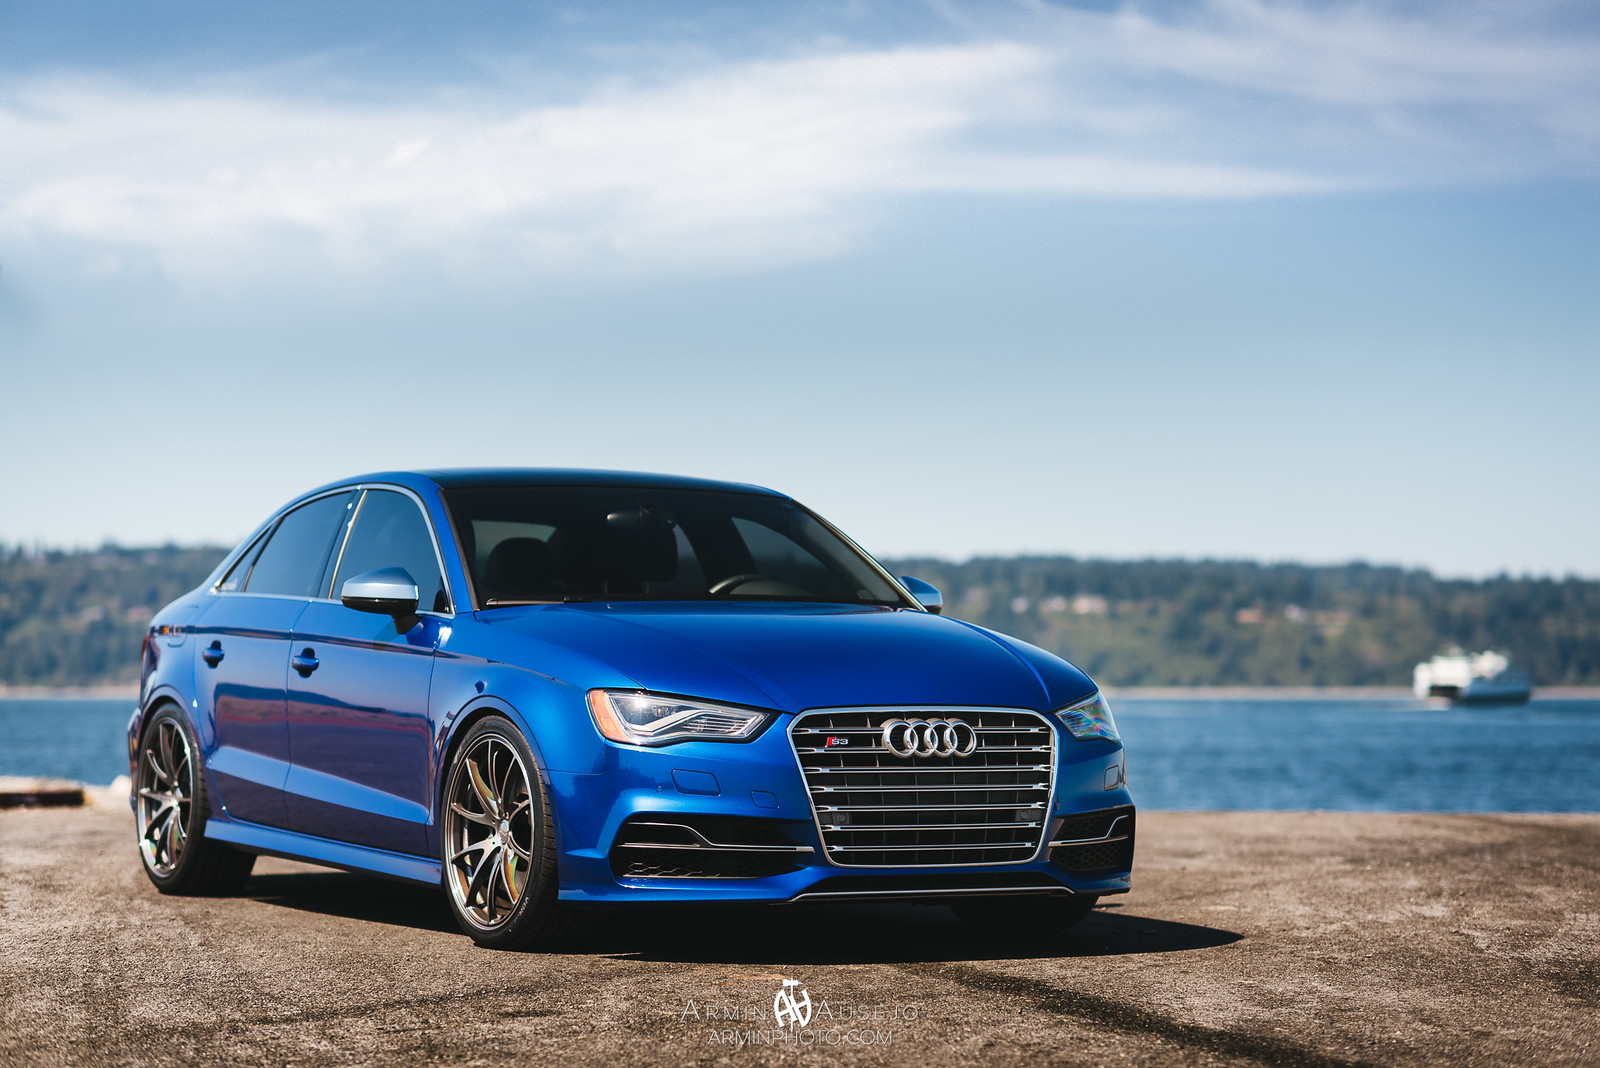 Audi S3 on Volk Racing G25 Dark Prism